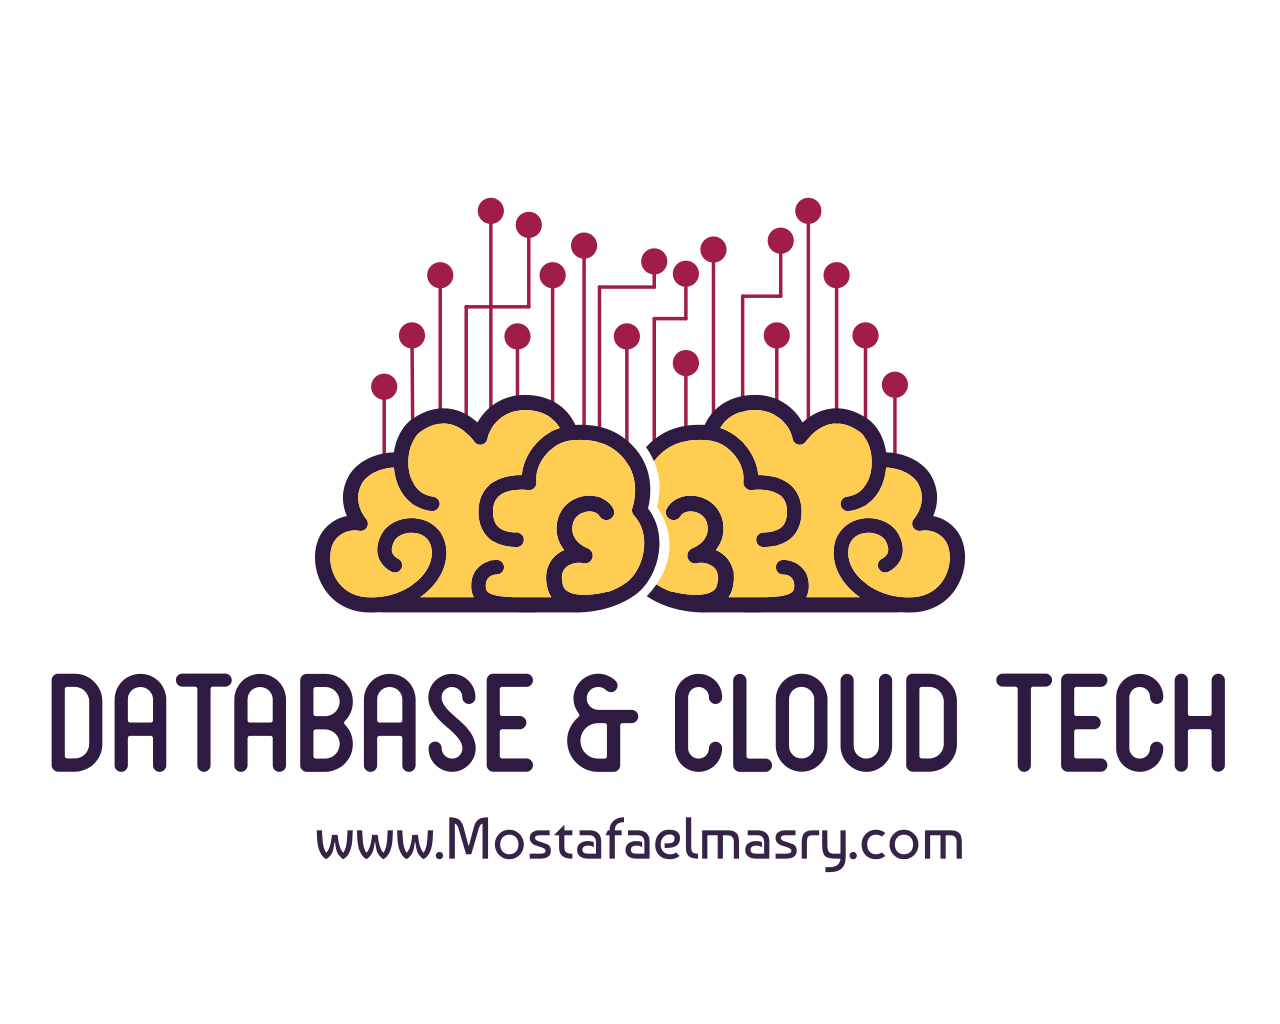 DATABASE & CLOUD TECH